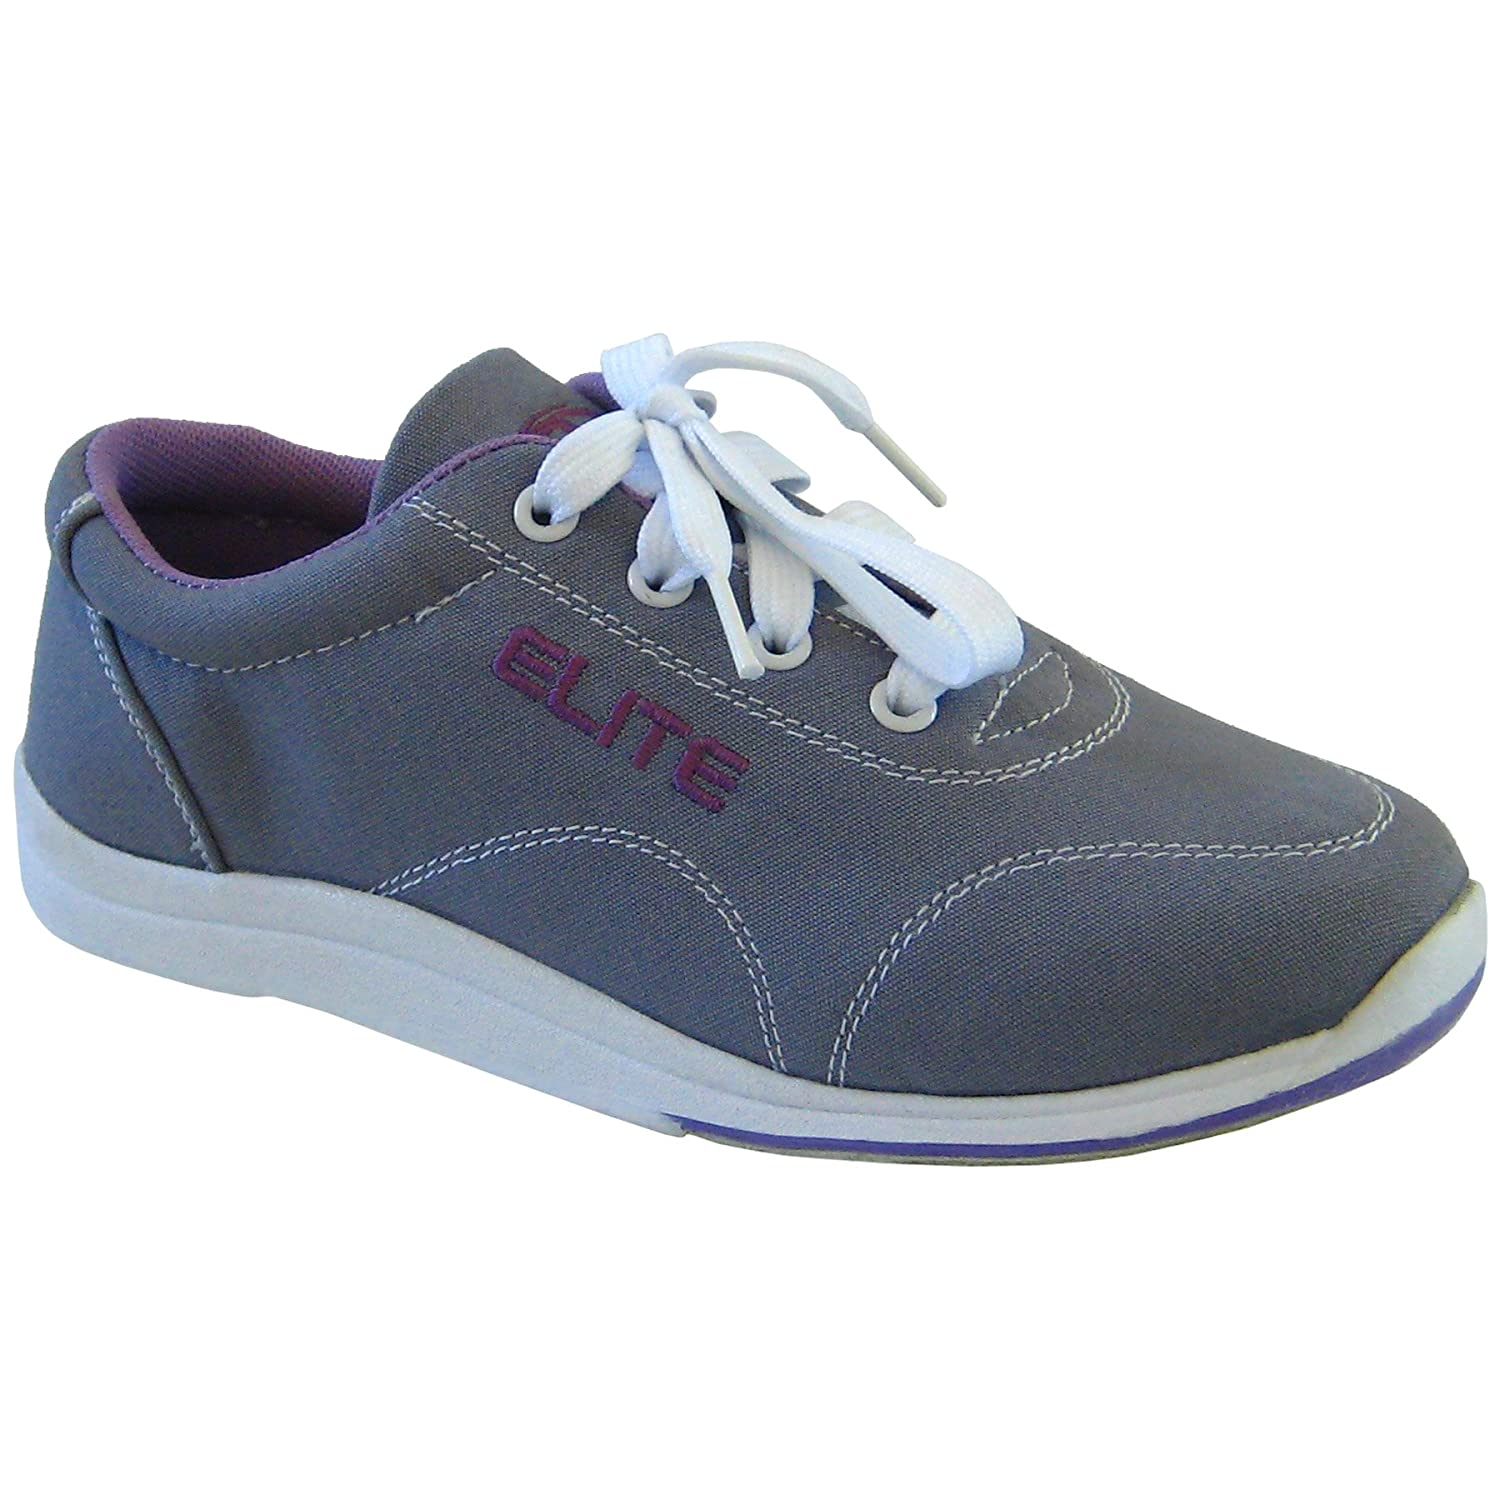 Womens Elite Casual Bowling Shoes